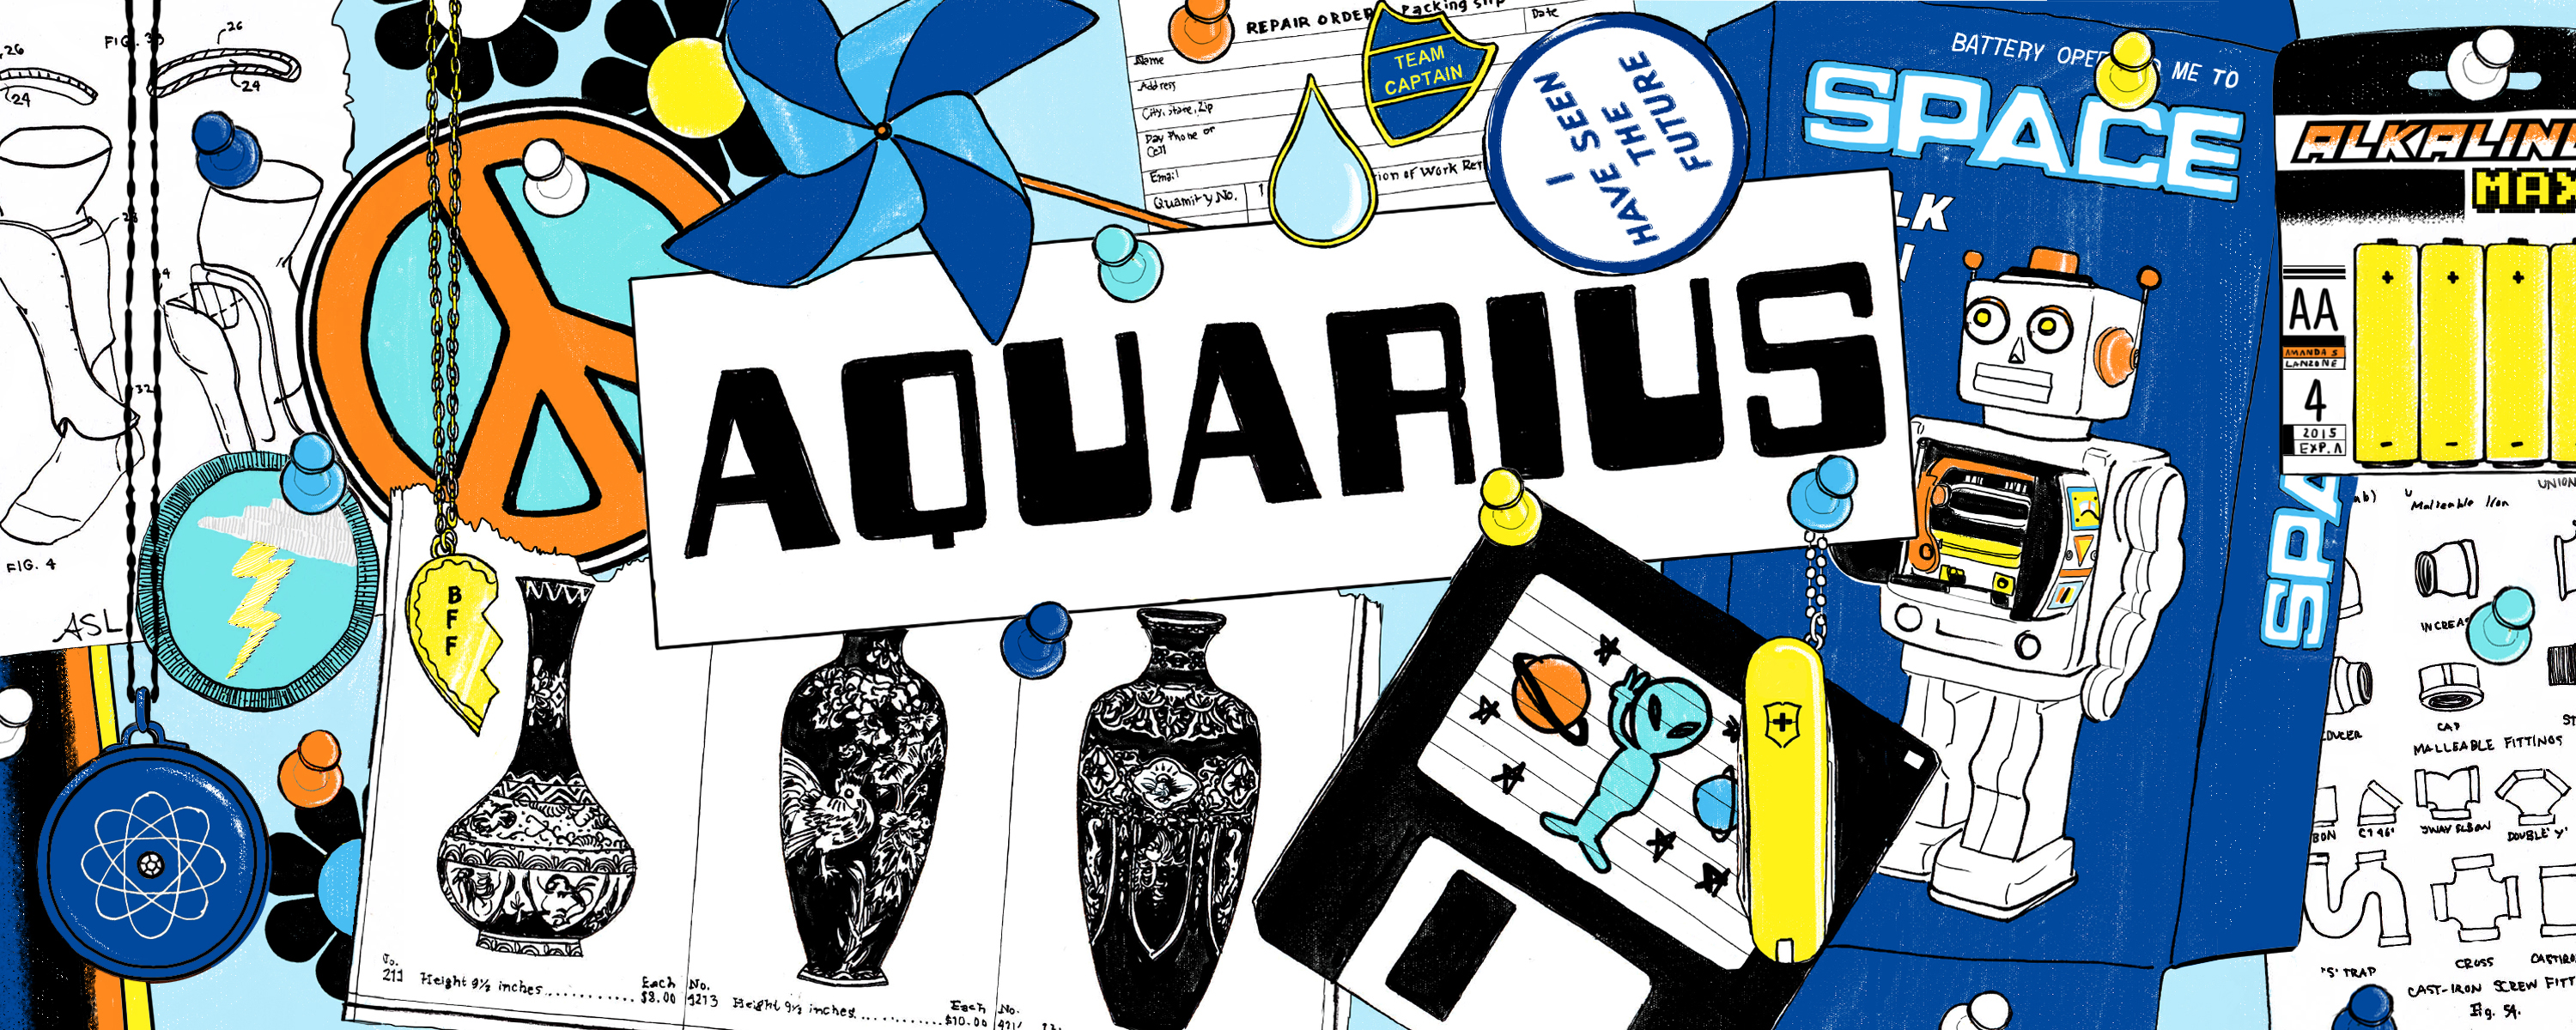 30 october horoscope aquarius or aquarius